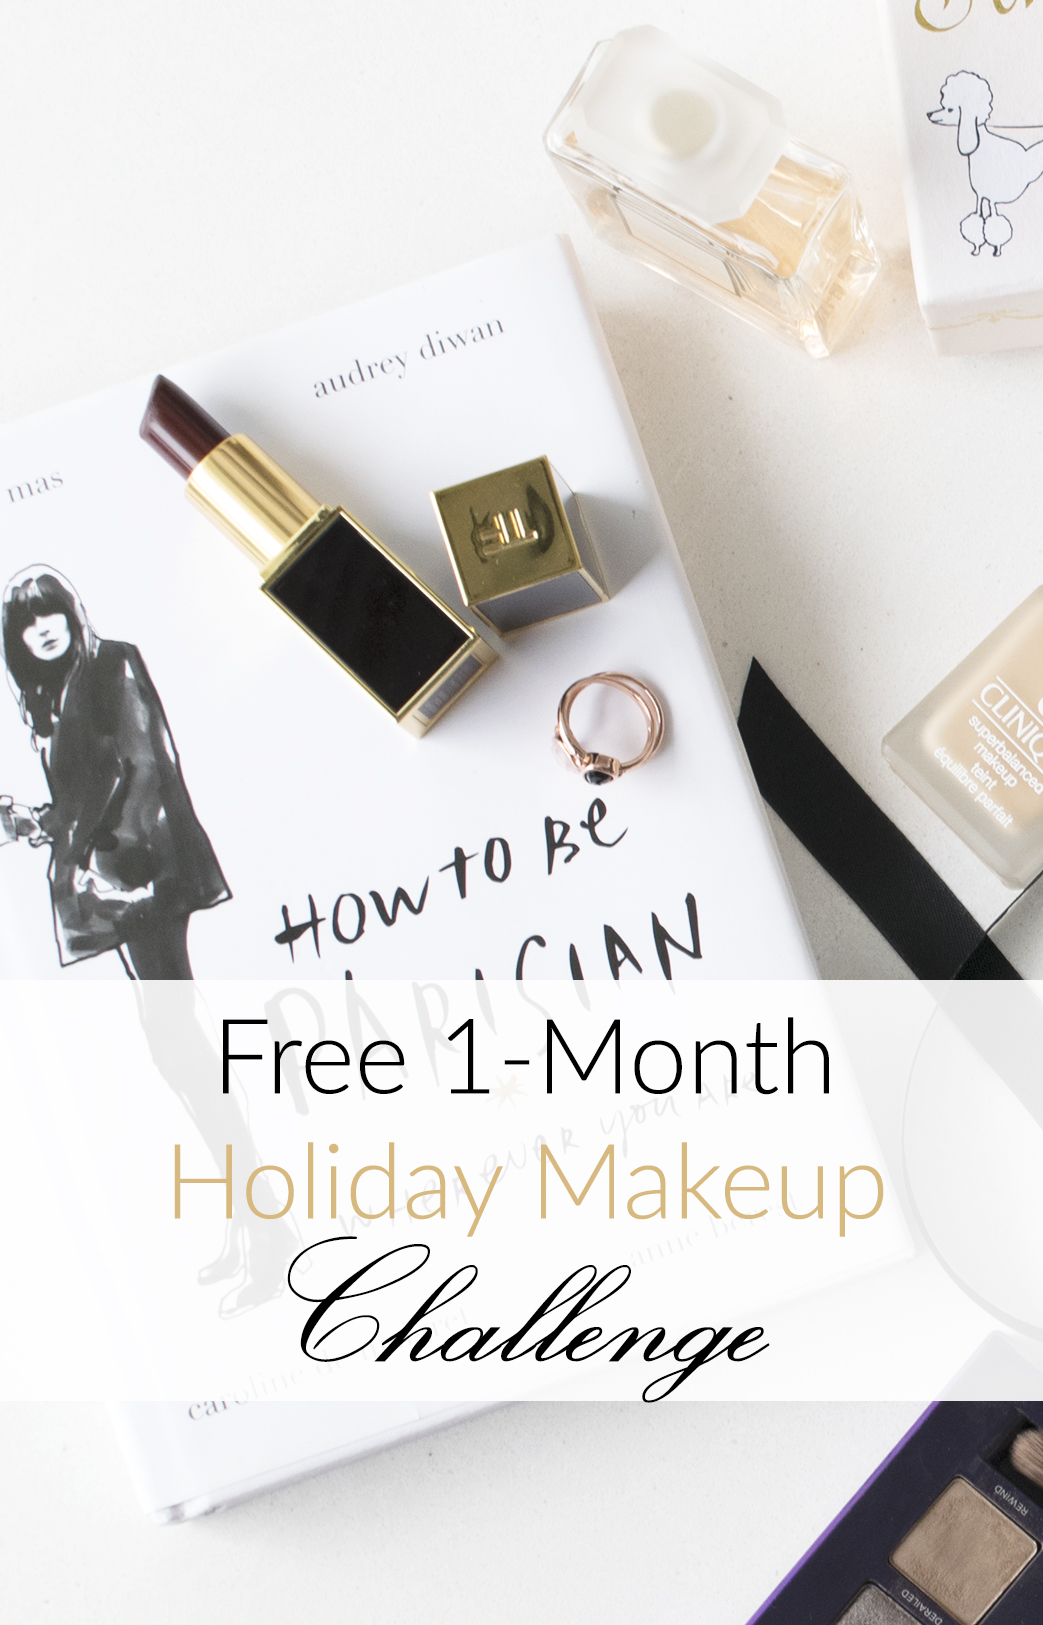 1-Month Holiday Makeup Challenge on The Skinny Scout